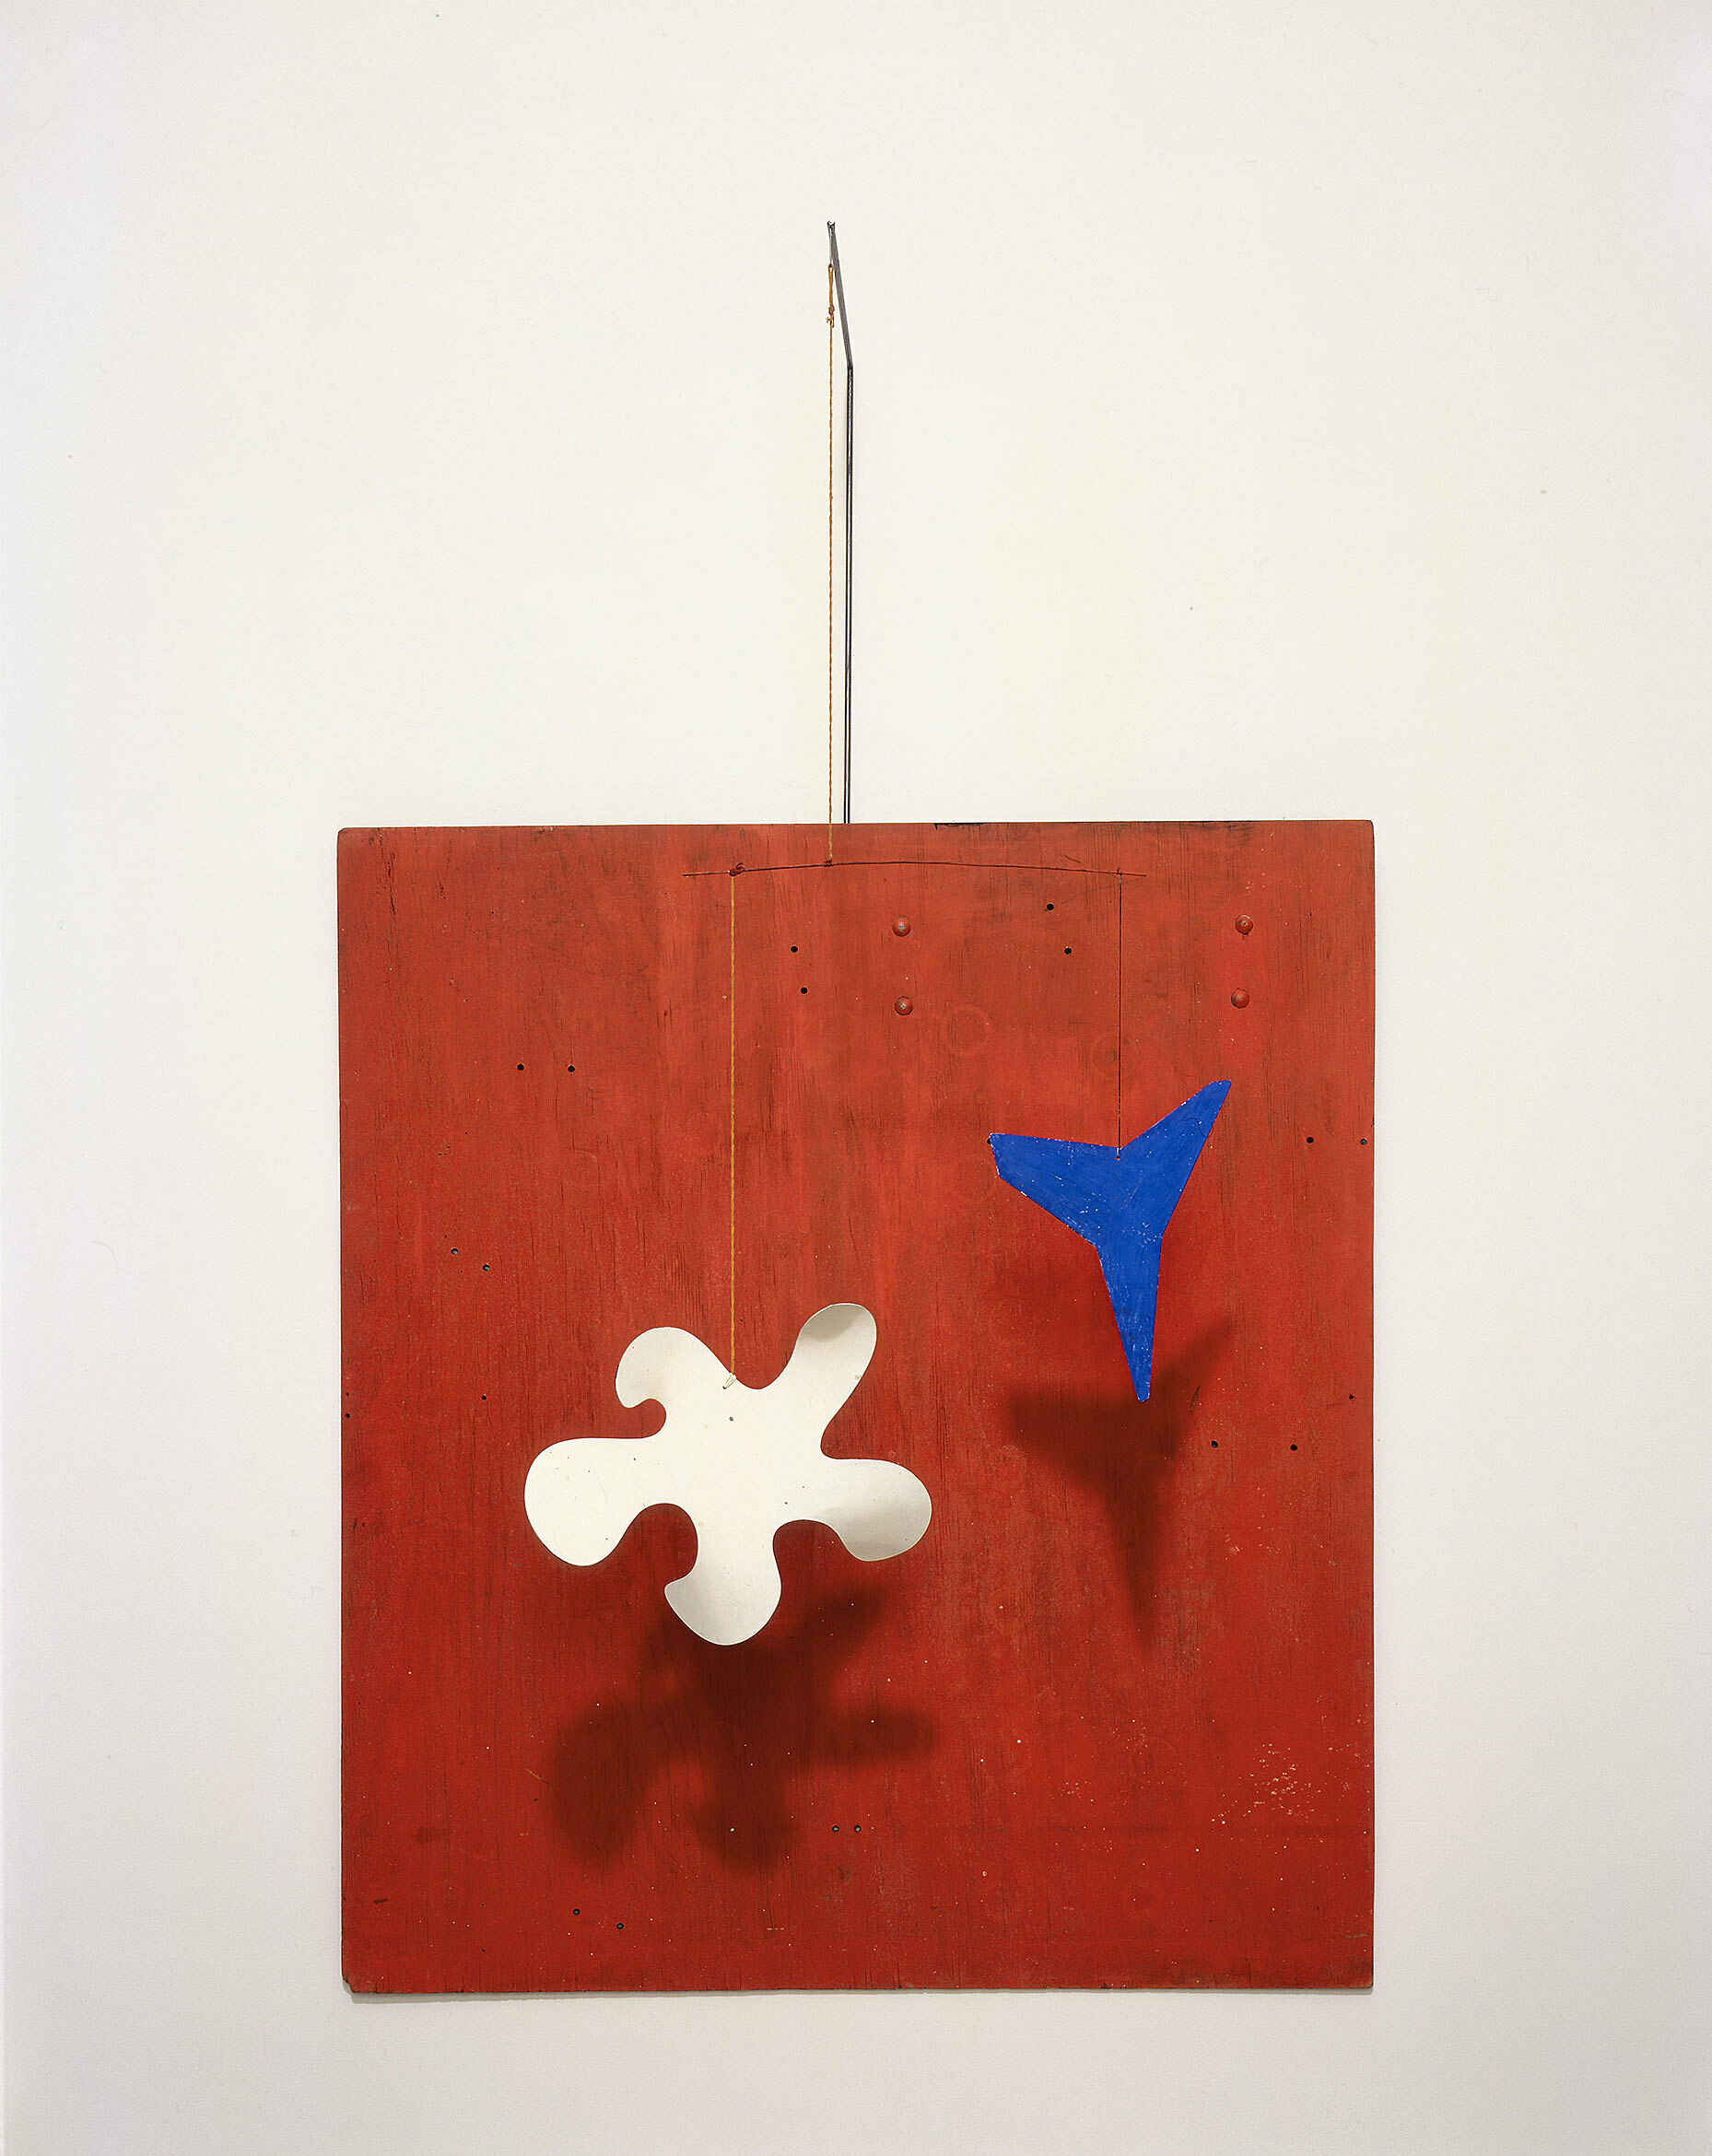 A work by Alexander Calder. A red square with abstract shapes in blue and white.